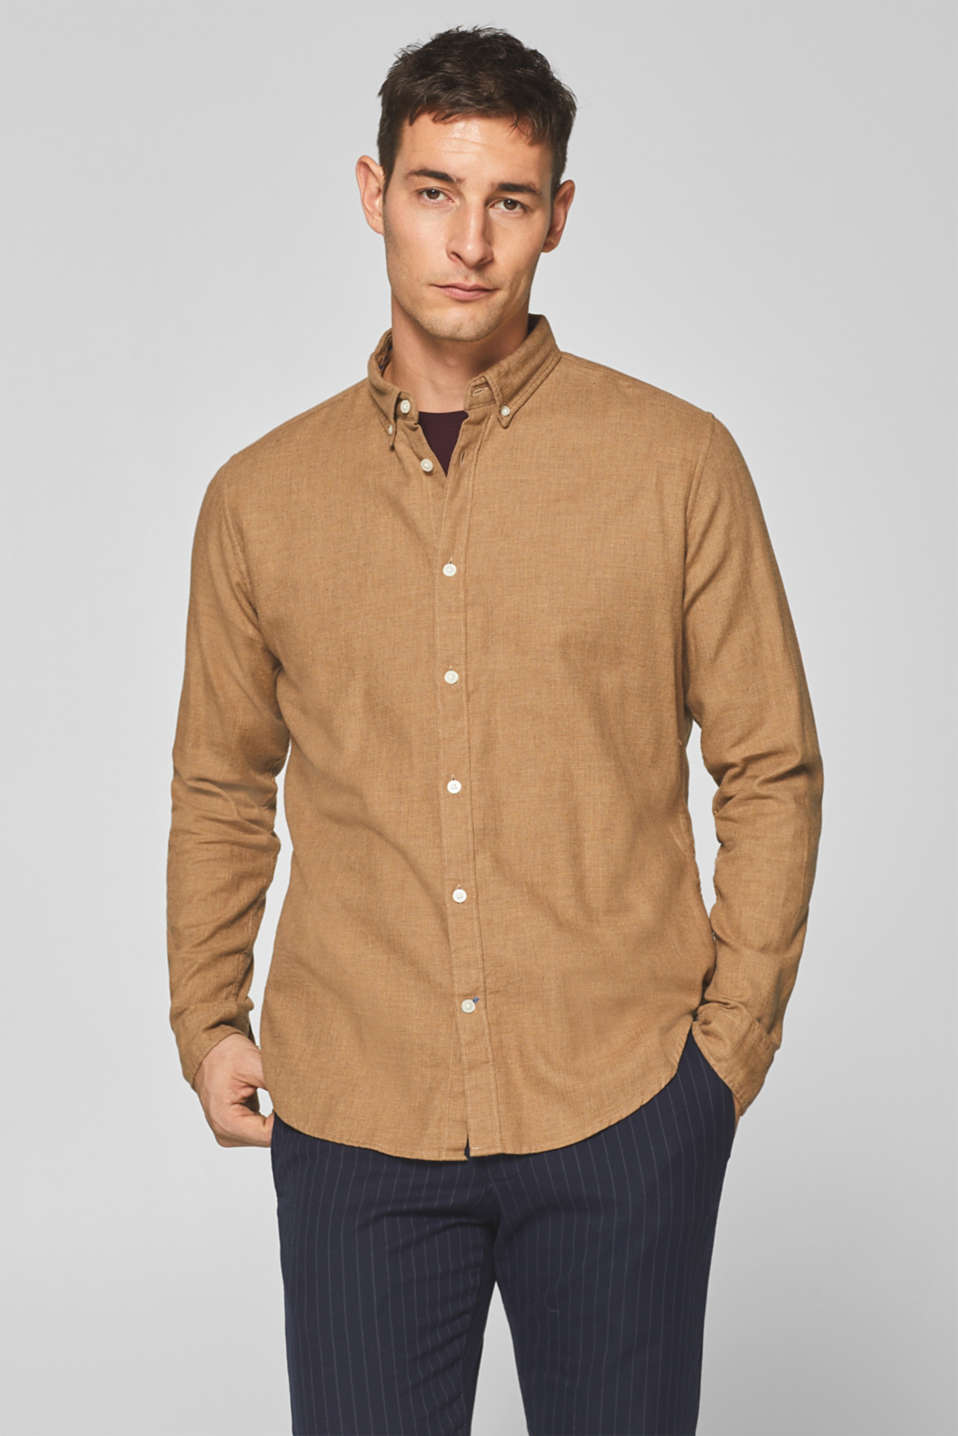 Esprit - Shirt with herringbone texture, 100% cotton